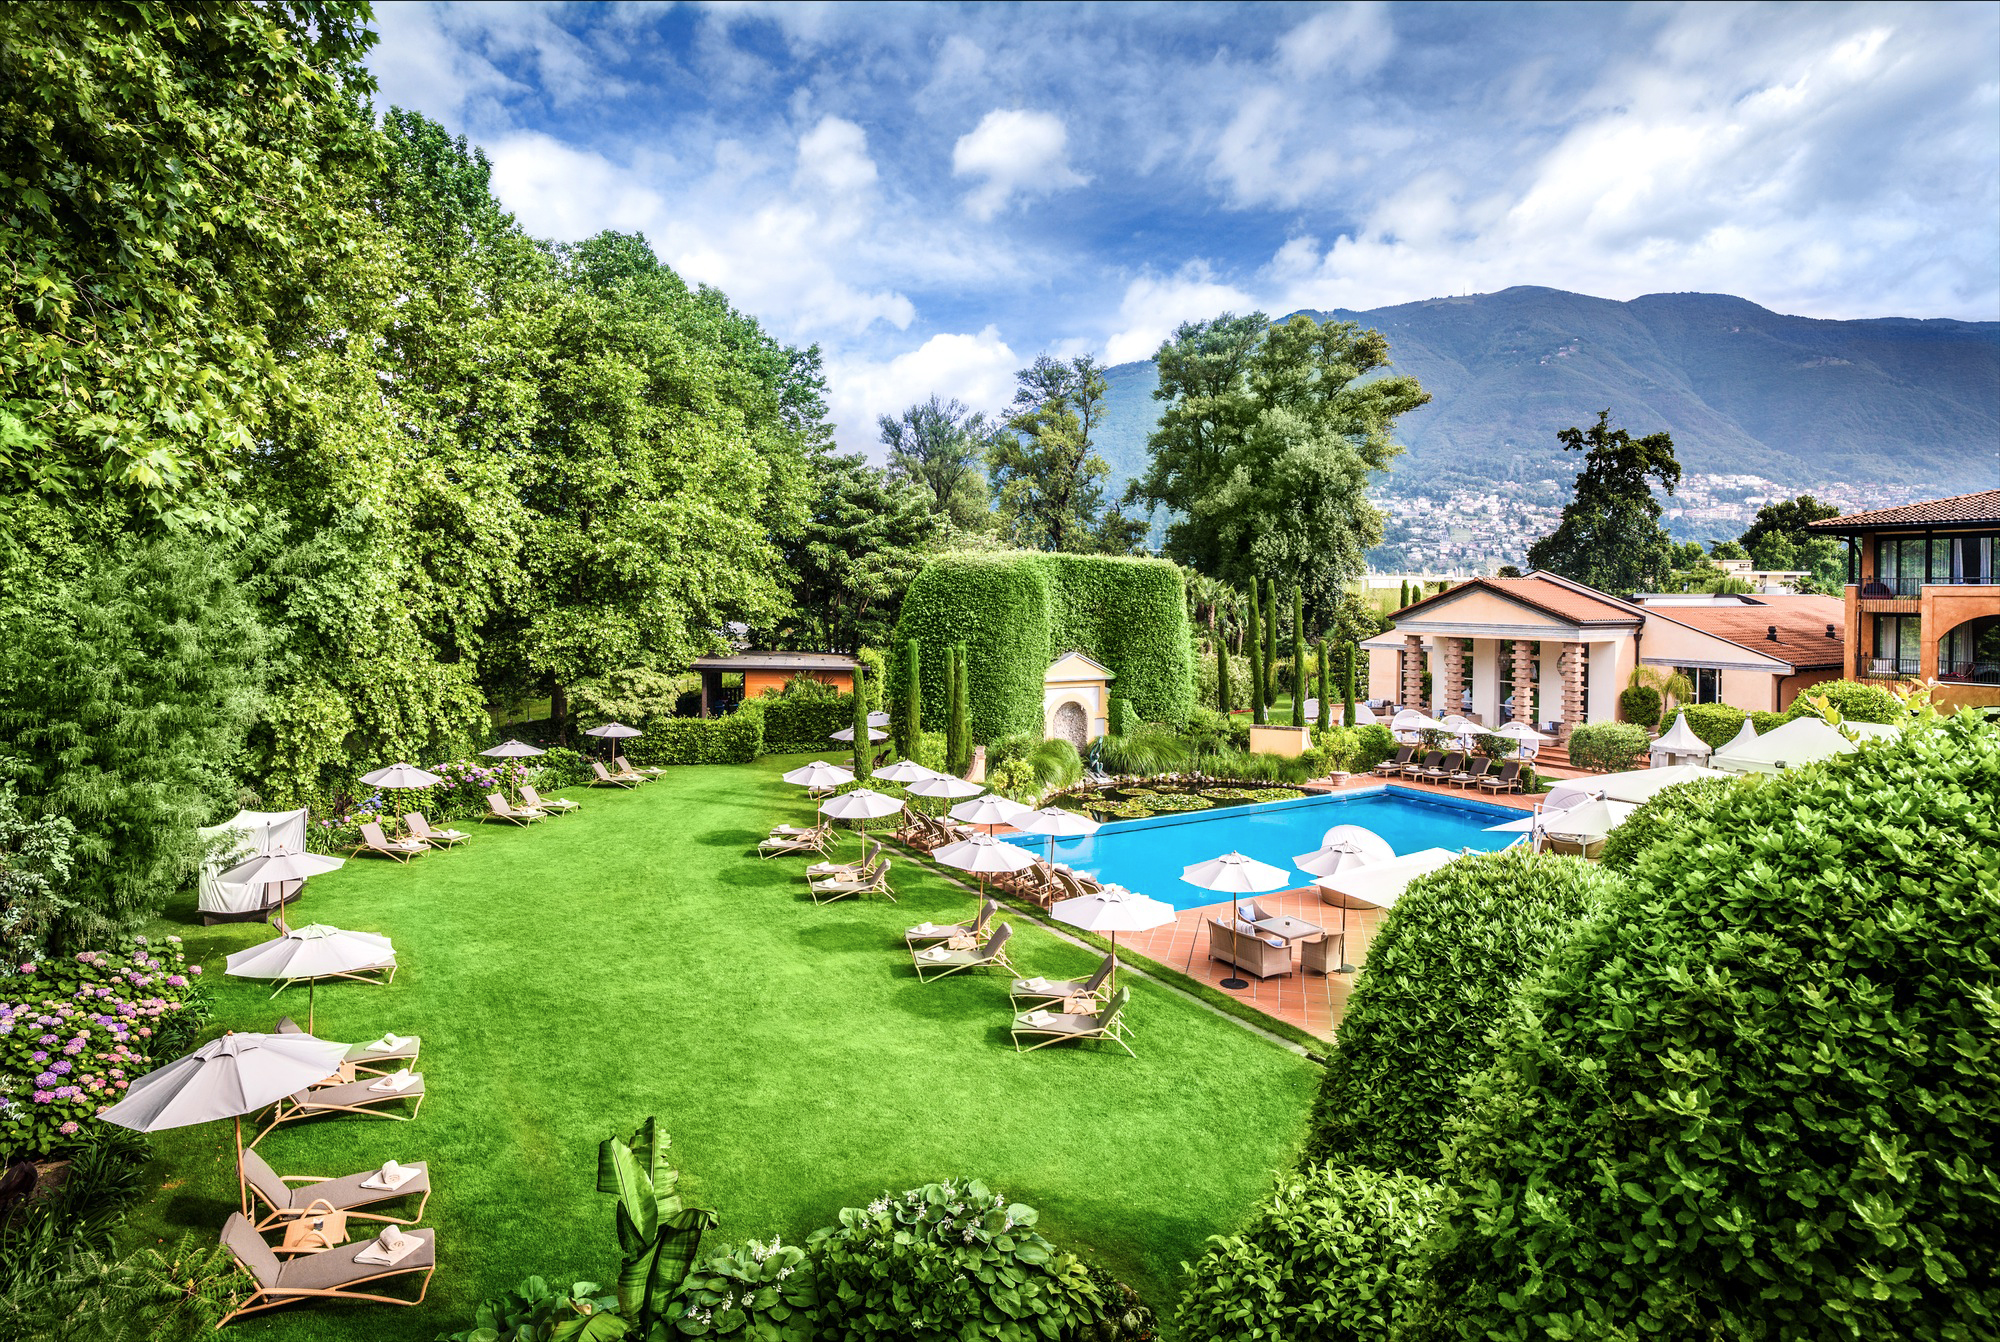 Hotel giardino lago das personal retreat for Design hotel tessin